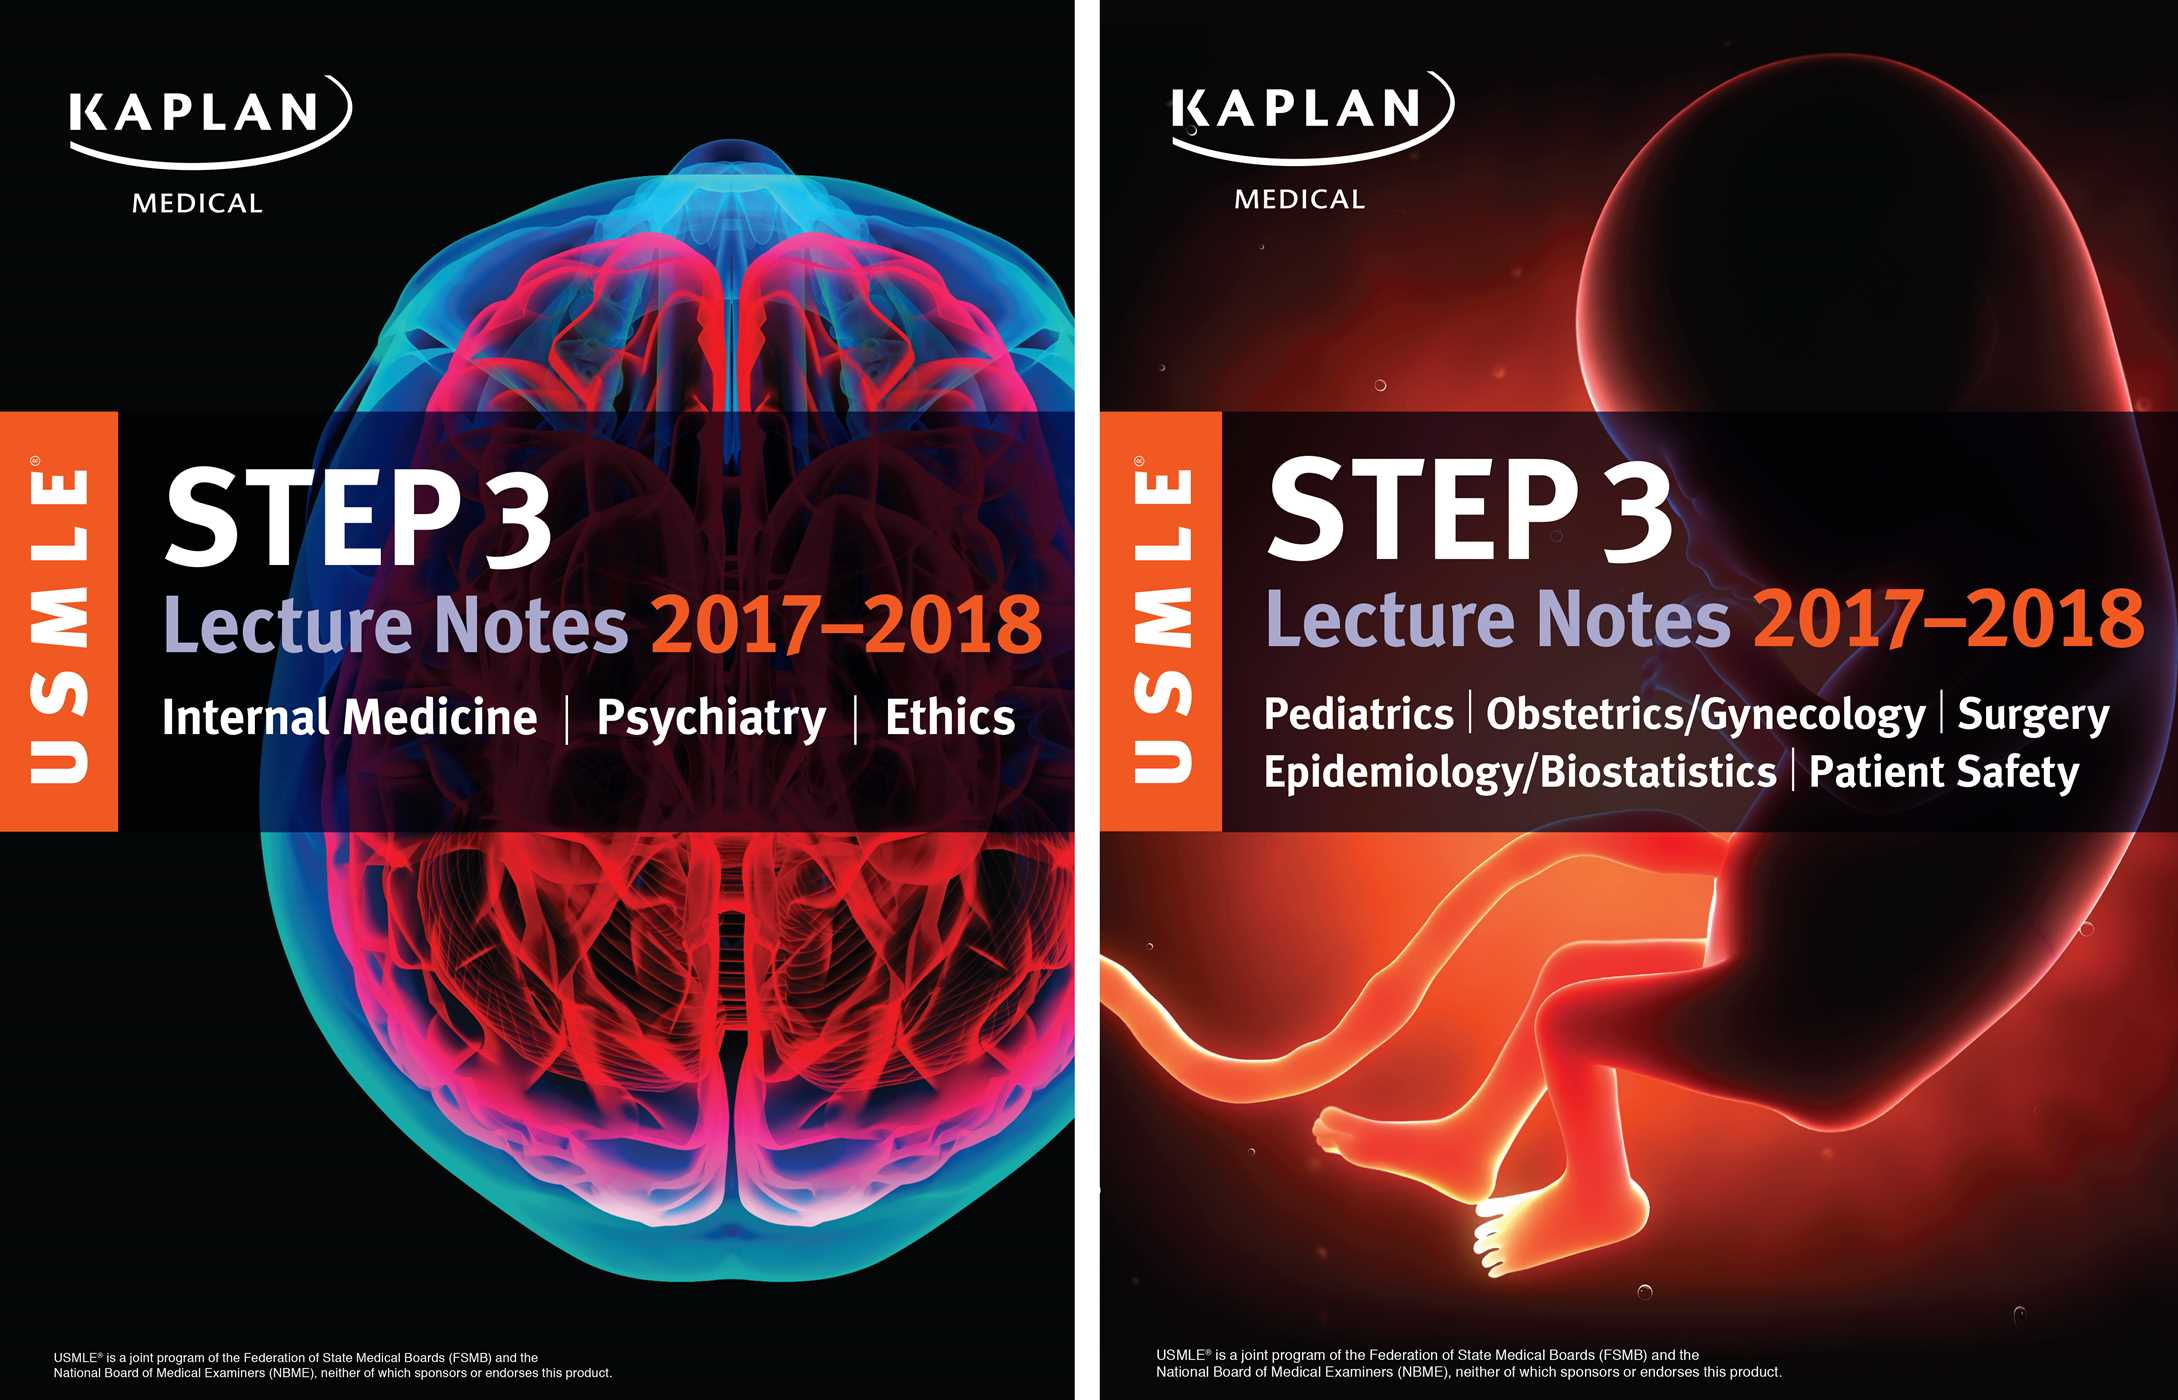 NEW KAPLAN USMLE 2017 STEP 1 LECTURE NOTES (FREE FIRST AID BOOK and FREE DVDs)